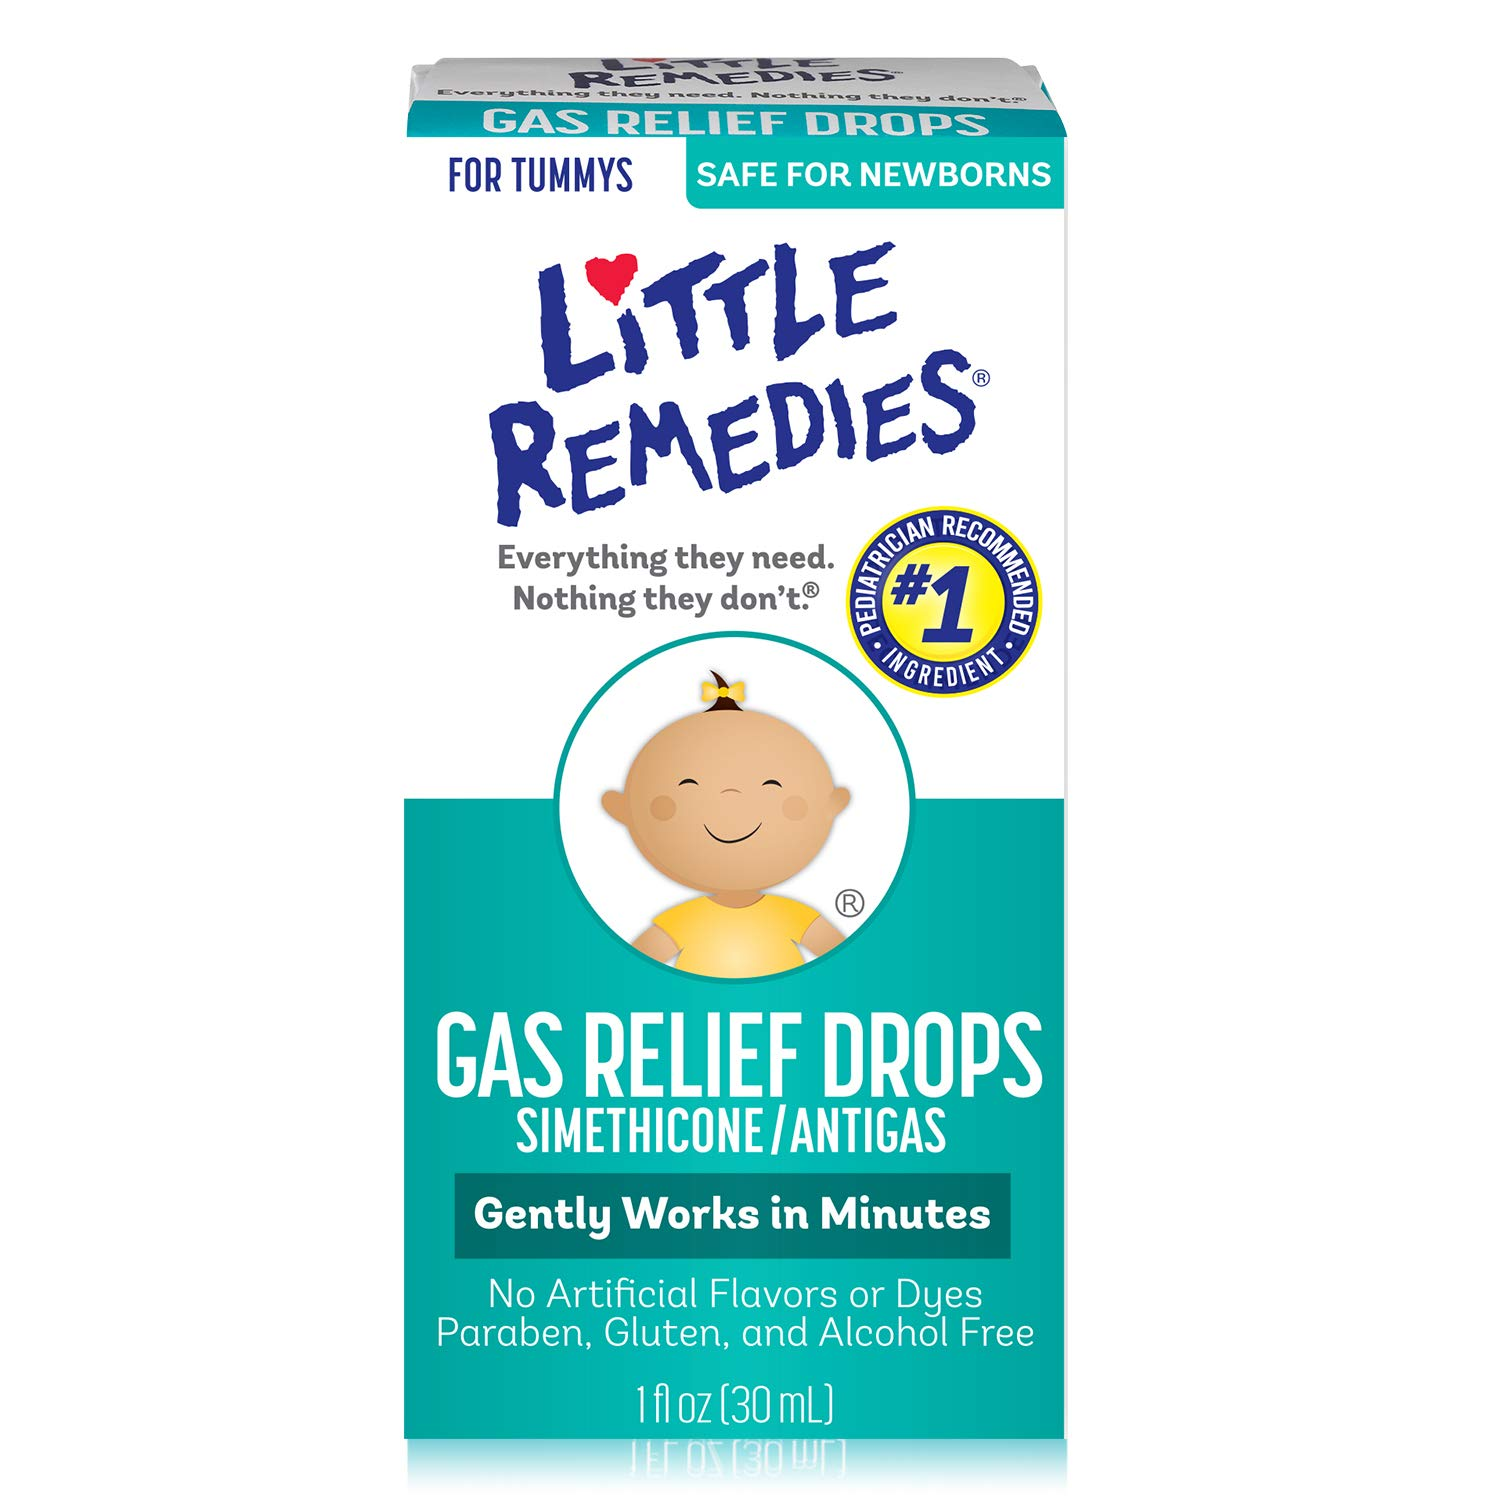 Little Remedies Gas Relief Drops   Natural Berry Flavor   1 oz.   Pack of 1   Gently Works in Minutes   Safe for Newborns